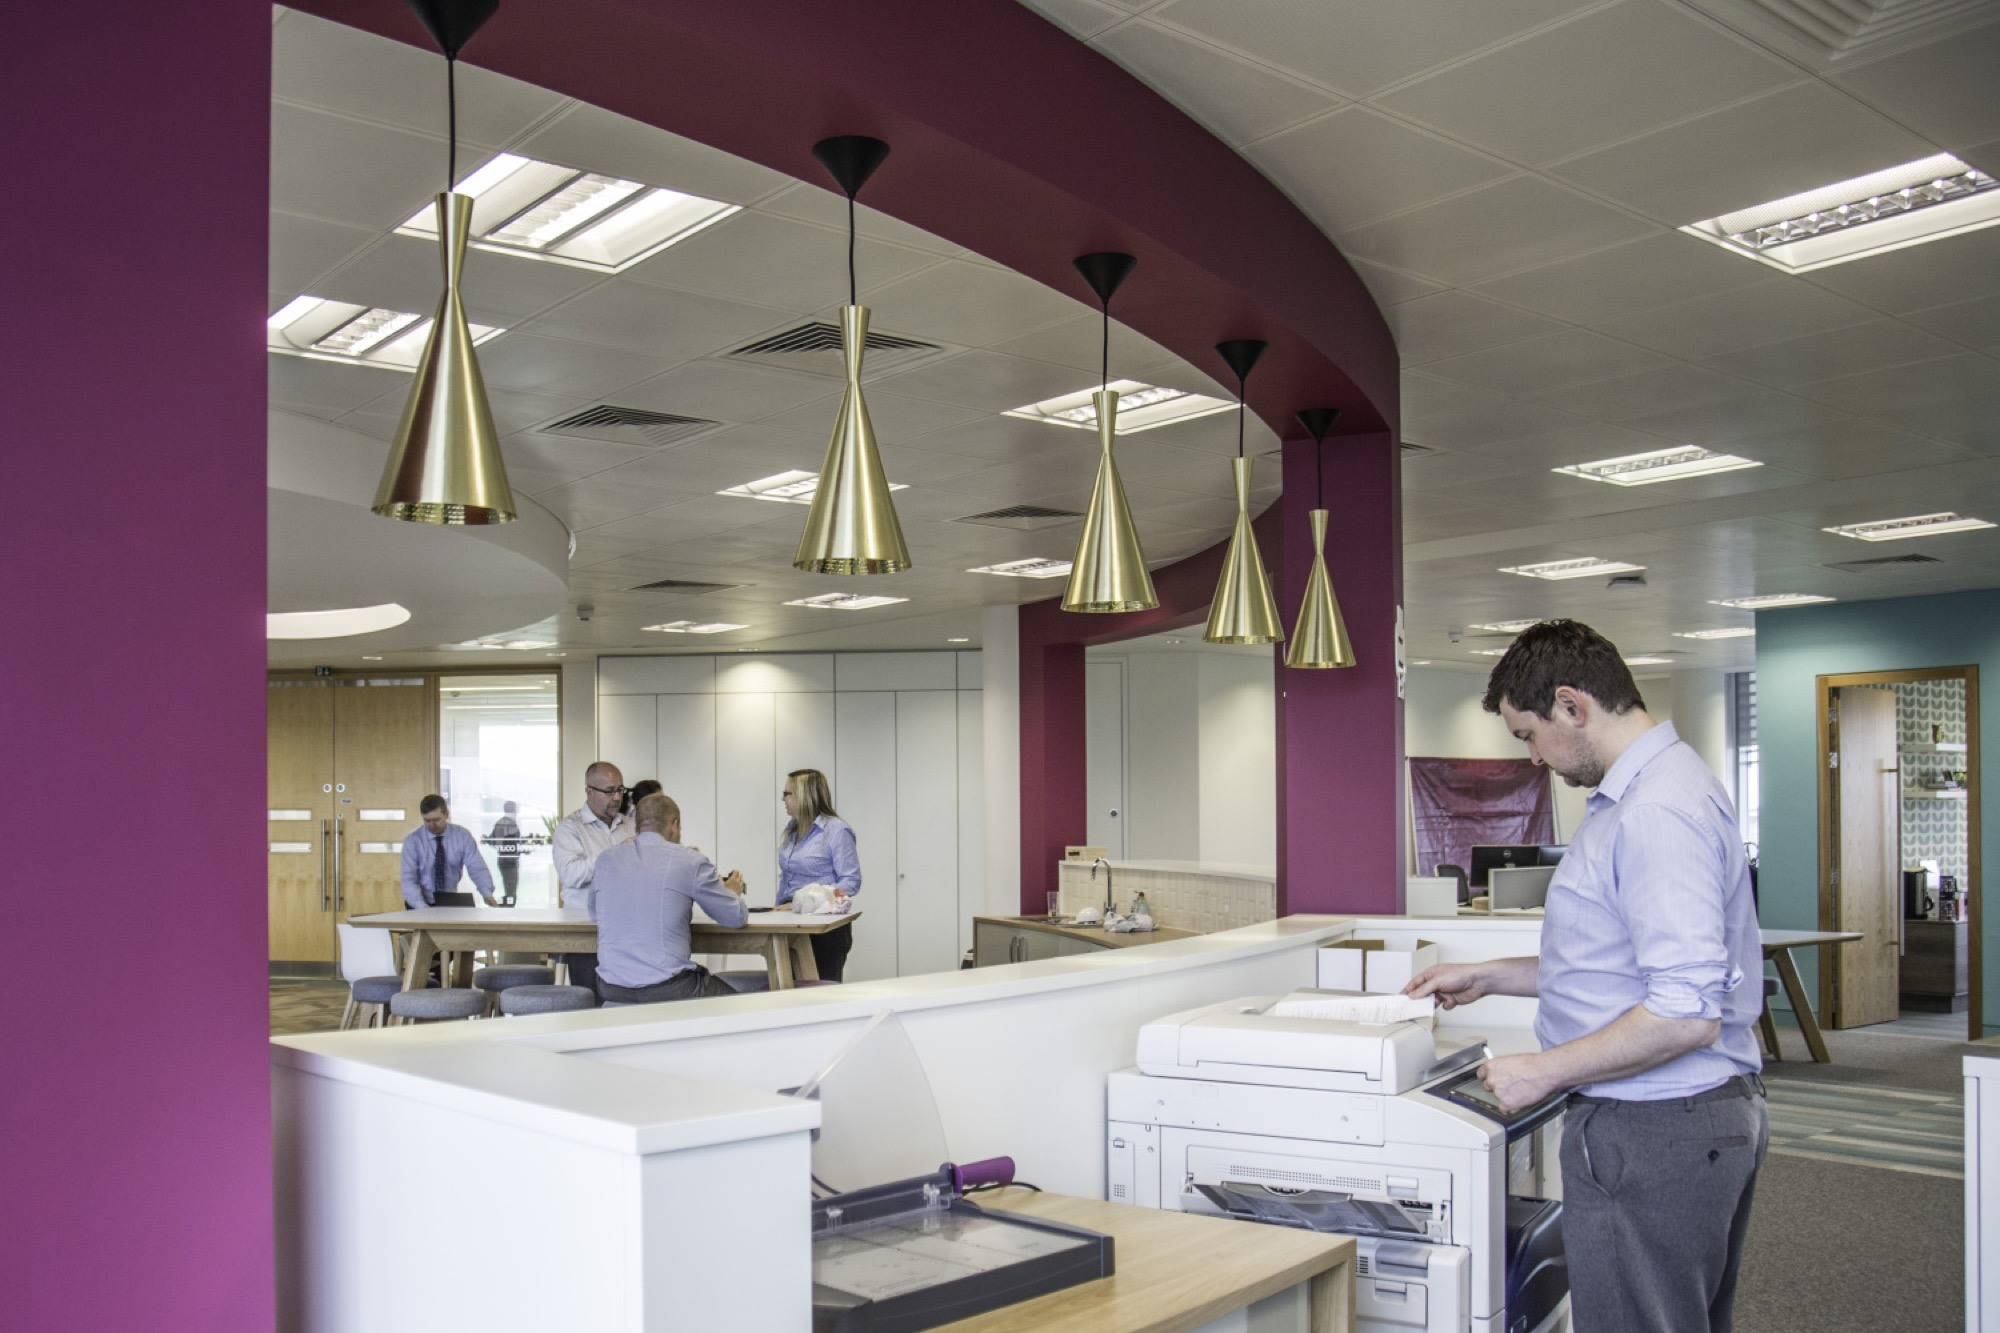 Travel Counsellors office communal area